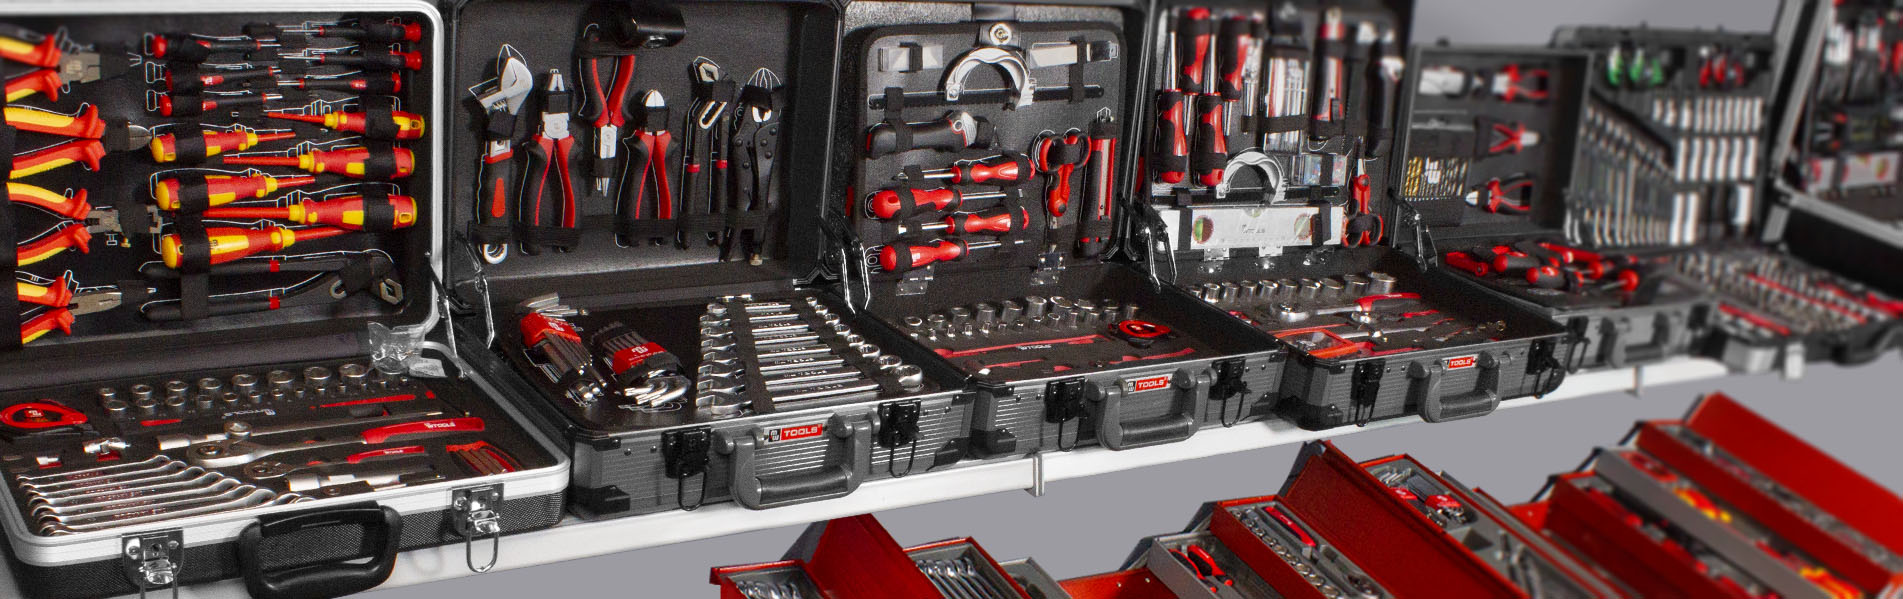 Coffres d'outils complets MW-TOOLS